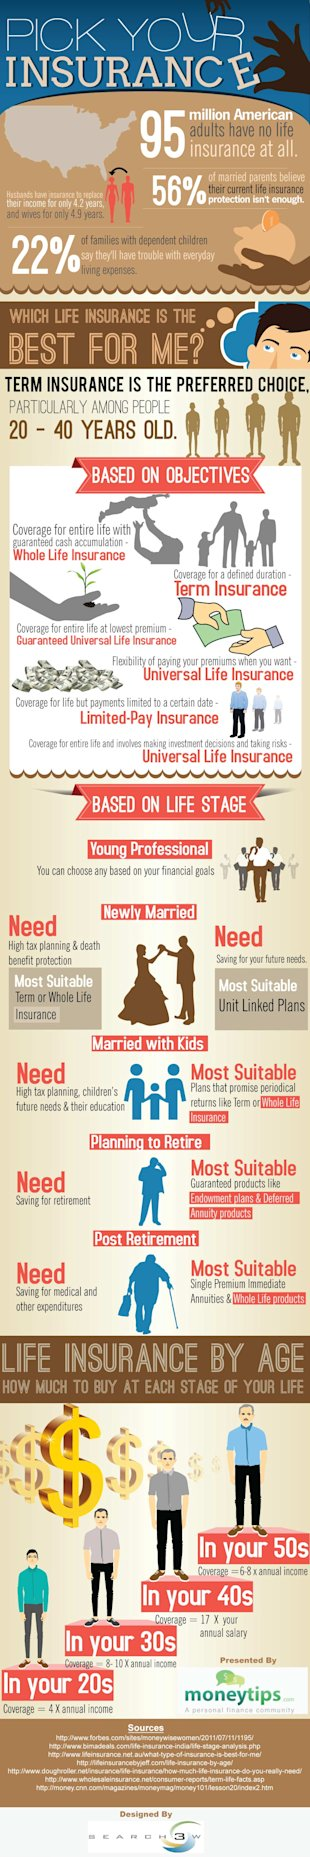 How to Pick Your Life Insurance? [Infographic] image How to Pick Your Life Insurance